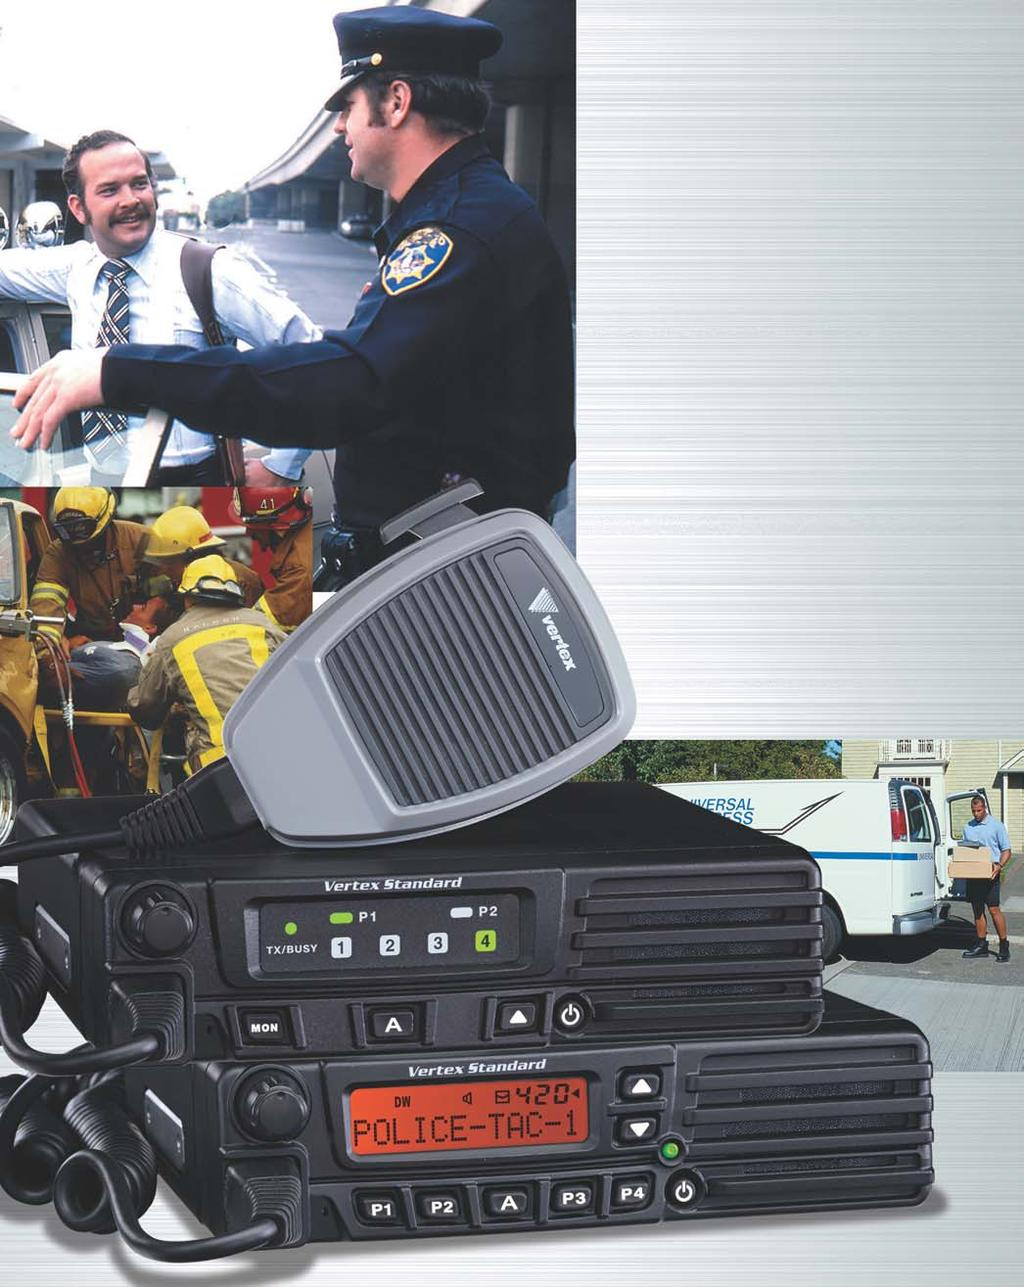 VX-4100/4200SERIES VHF/UHF Mobile Radios HIGH POWER OUTPUT (50W VHF/45W UHF) WIDE FREQUENCY SPAN 134-174 MHz (VX-4104/4204) 400-470 MHz / 450-520 MHz (VX-4107/4207) 501 CHANNELS/32 GROUPS (VX-4200